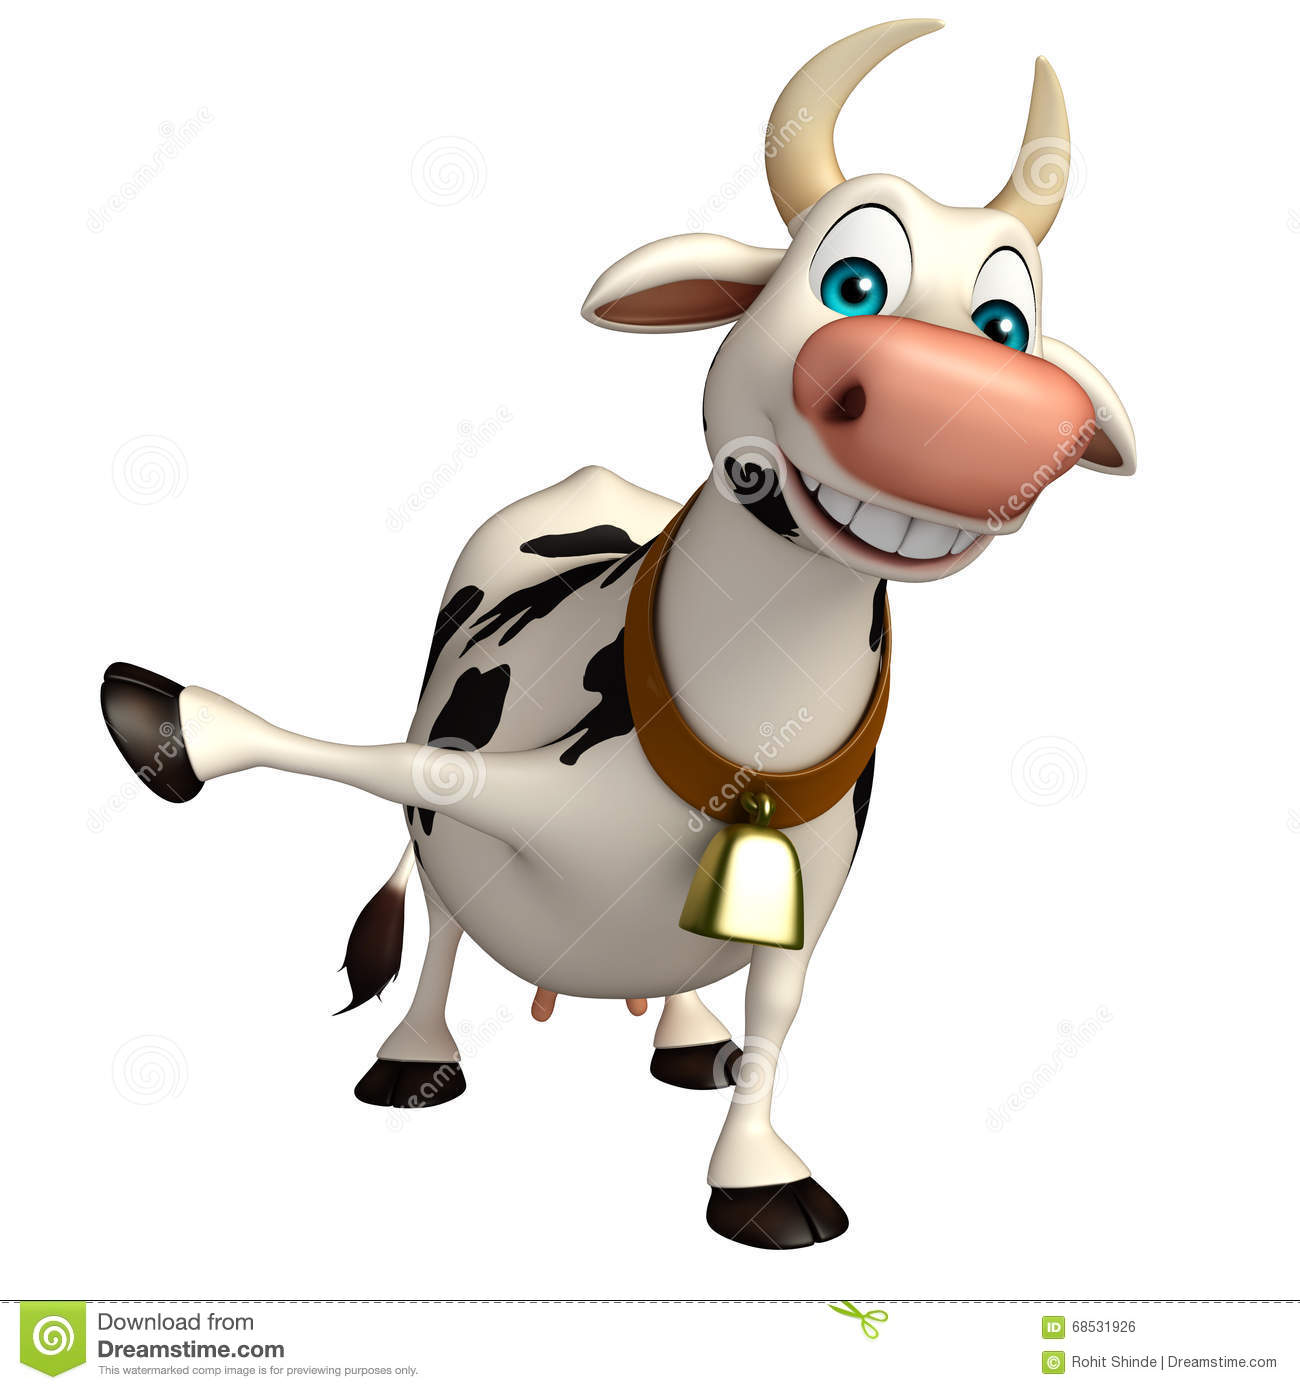 Personnage de dessin anim dr le de vache amusement illustration stock illustration du - Photo de vache drole ...